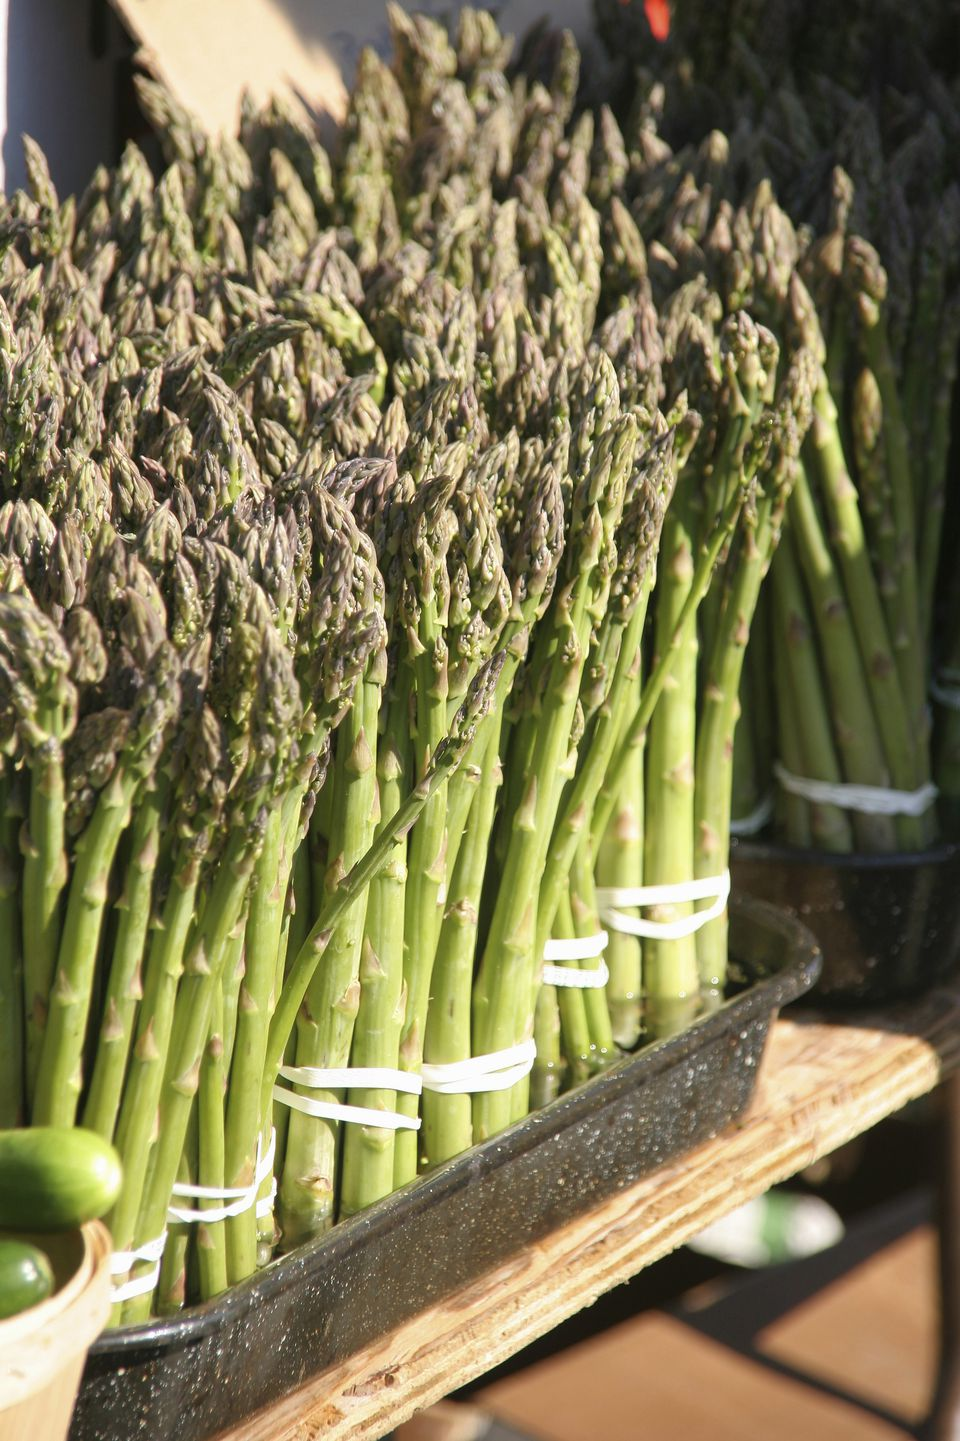 Asparagus at a farmers market, Kitchener, Ontario